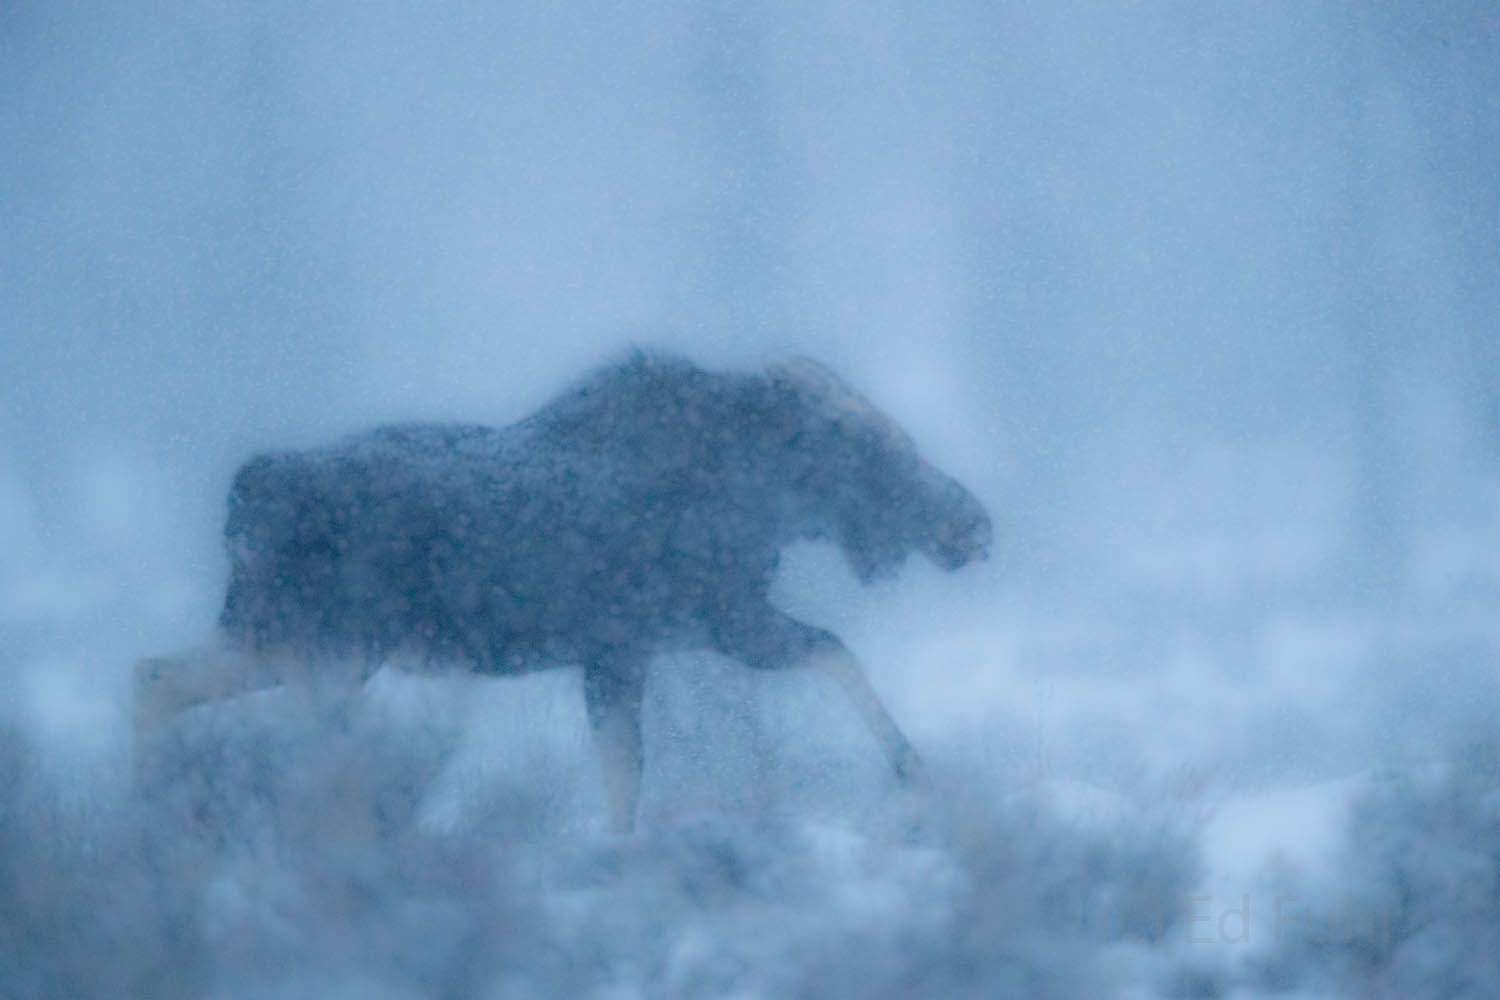 Moose  finally heads for cover in heavy winds and snow